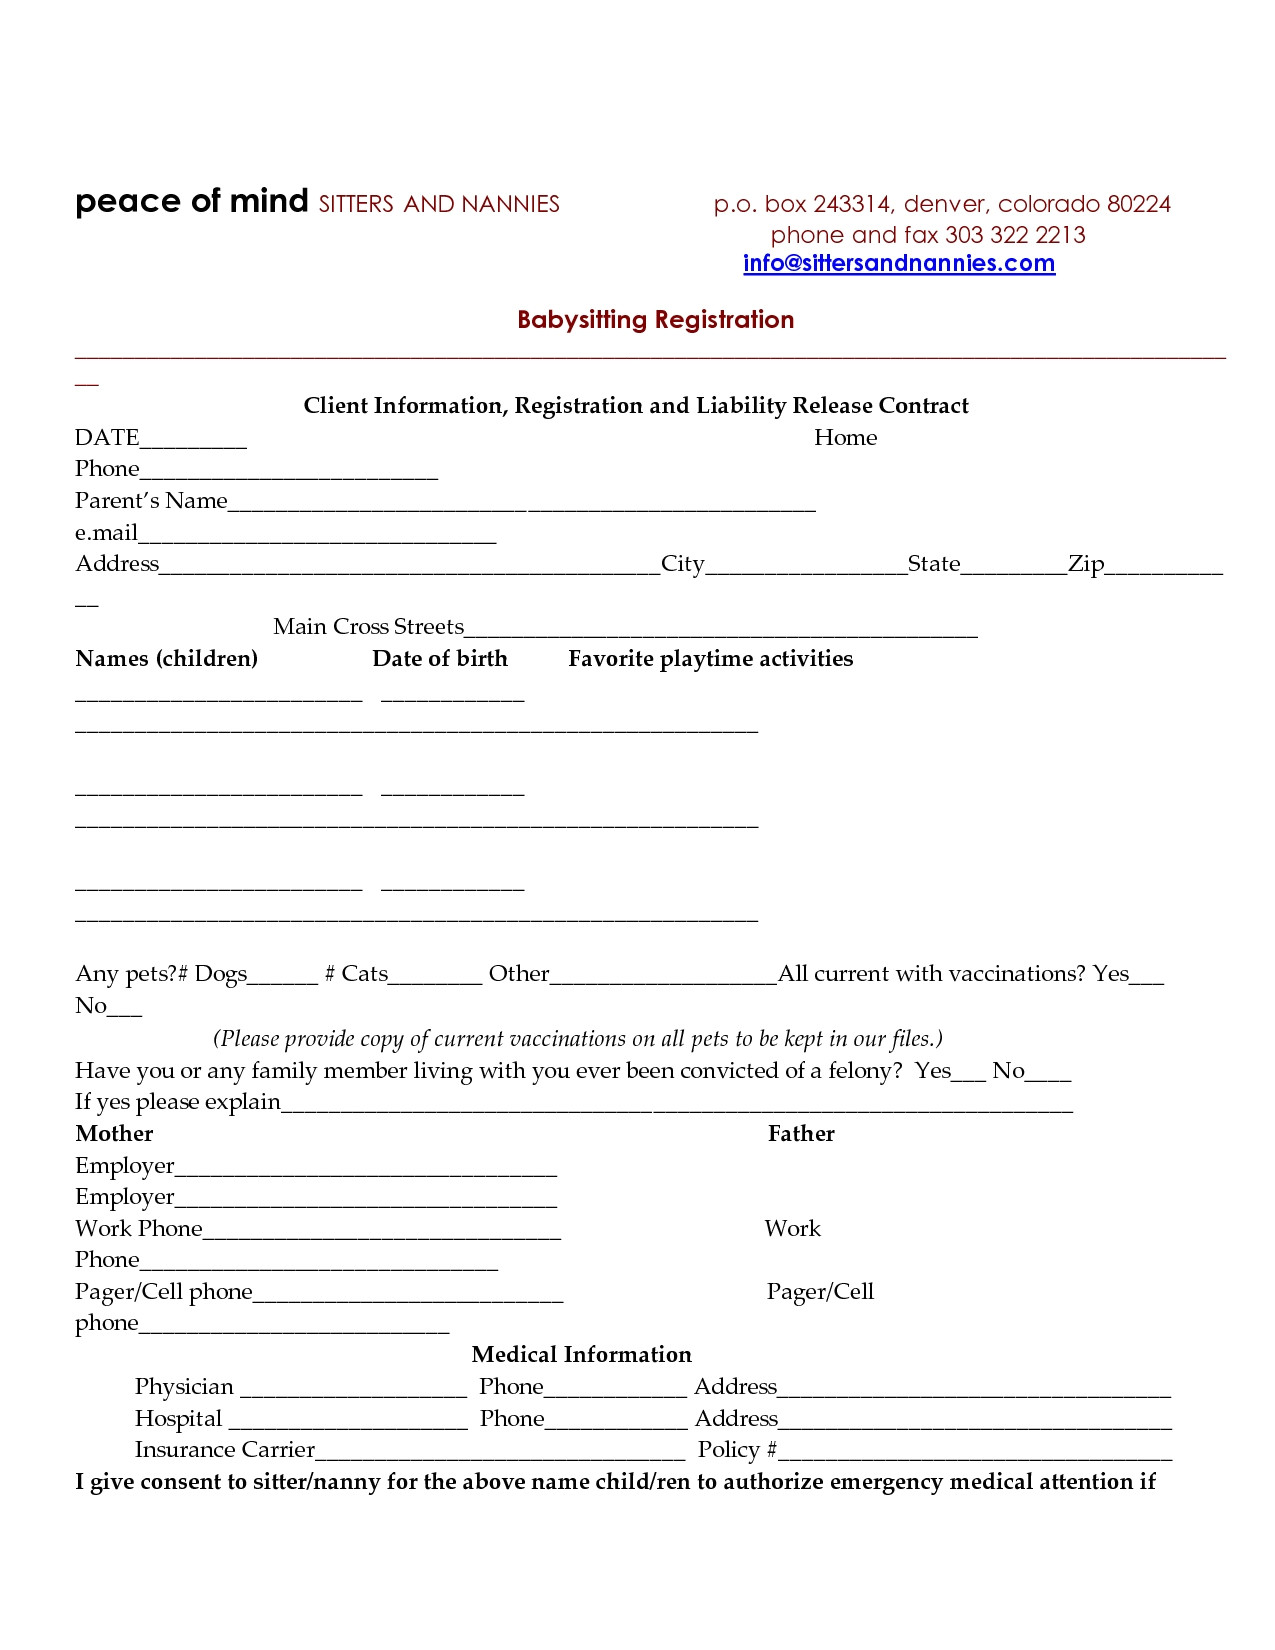 73633 babysitting agreement template